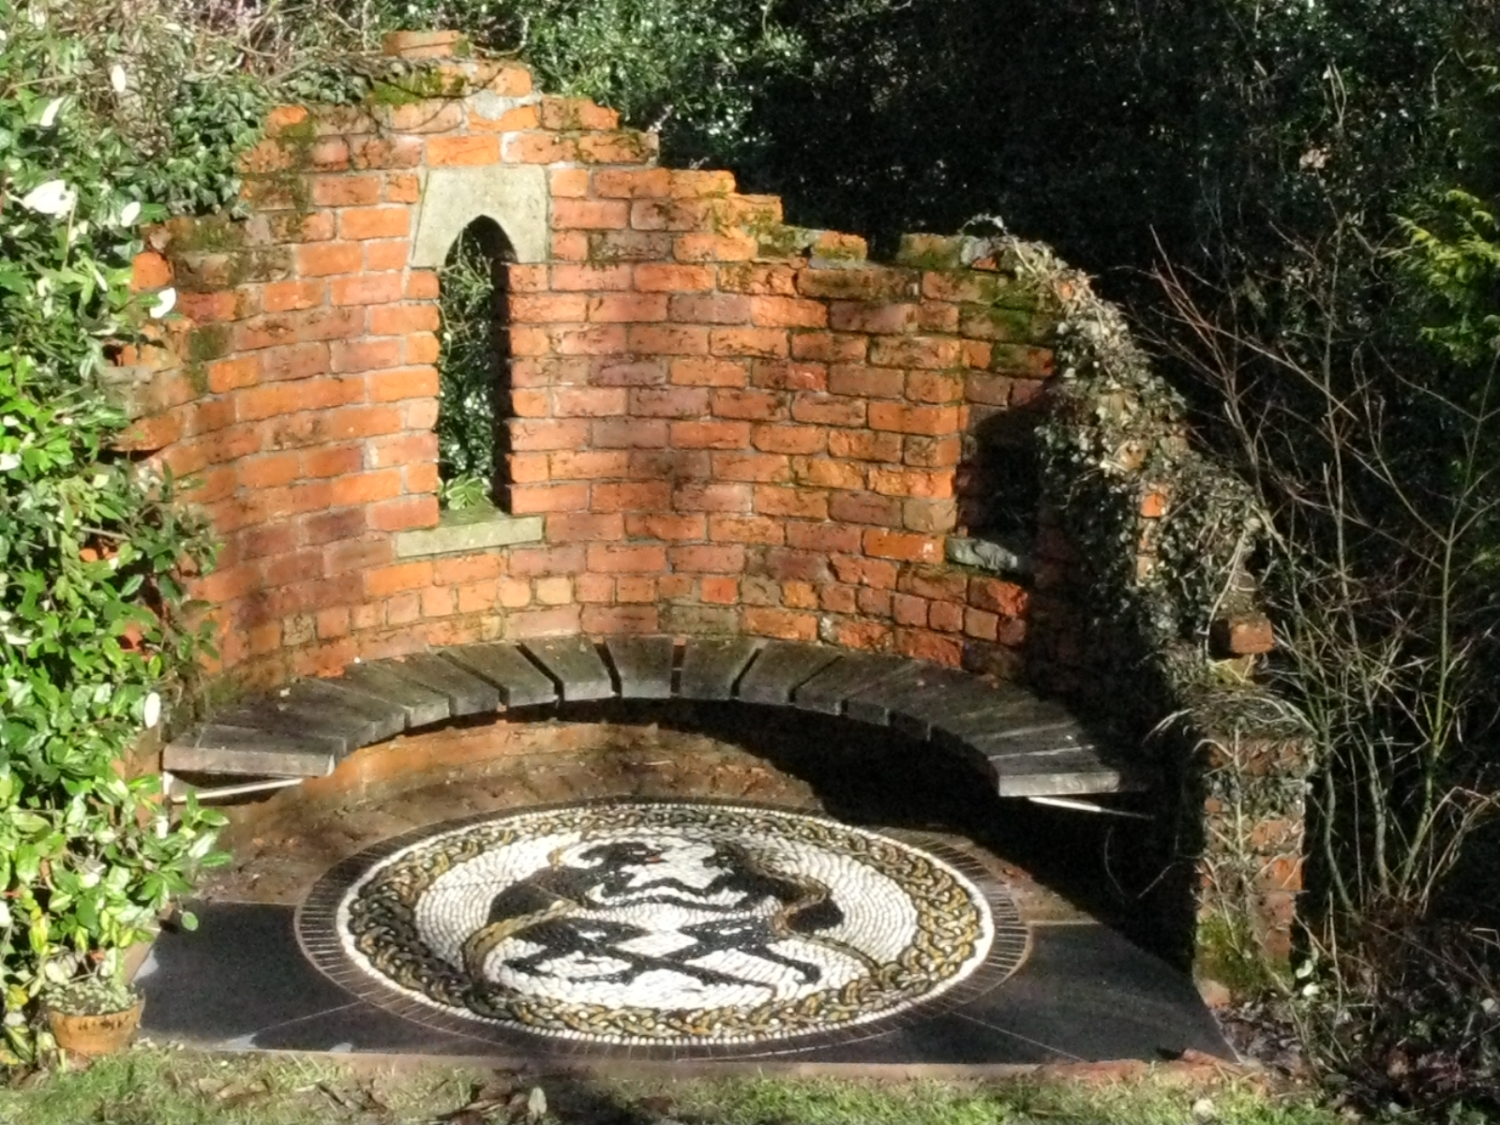 Lancaster Garden Walk: Clearbeck House, Higher Tatham Via Lancaster, Lancashire